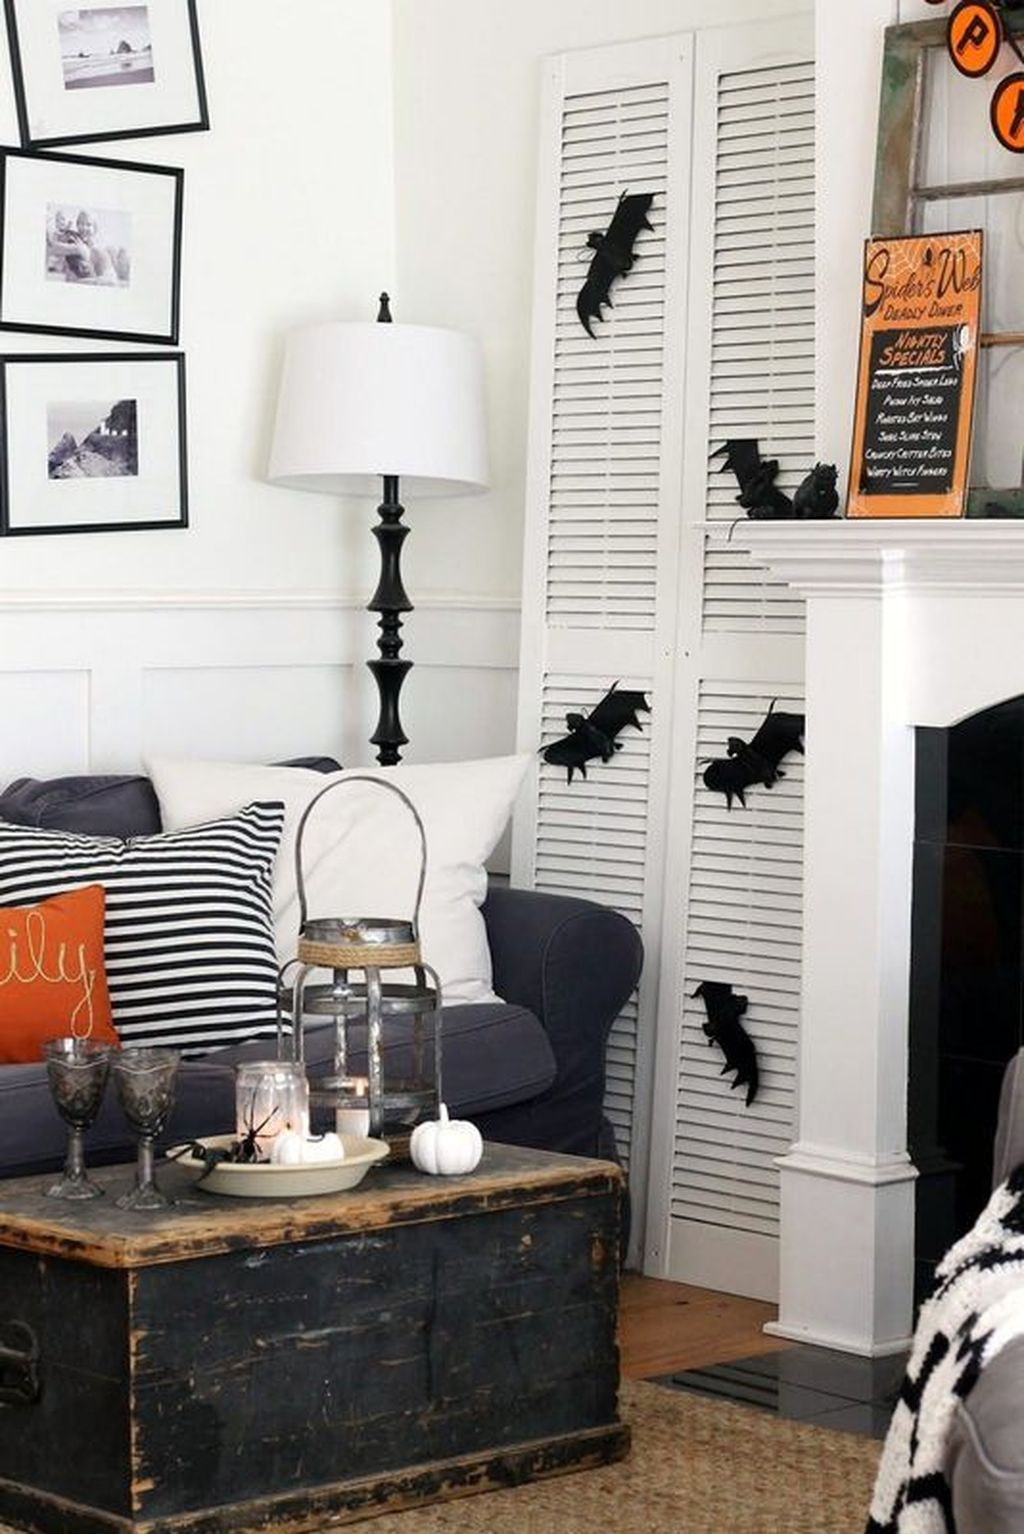 Stunning Black And White Halloween Decor Ideas For Your Home 30